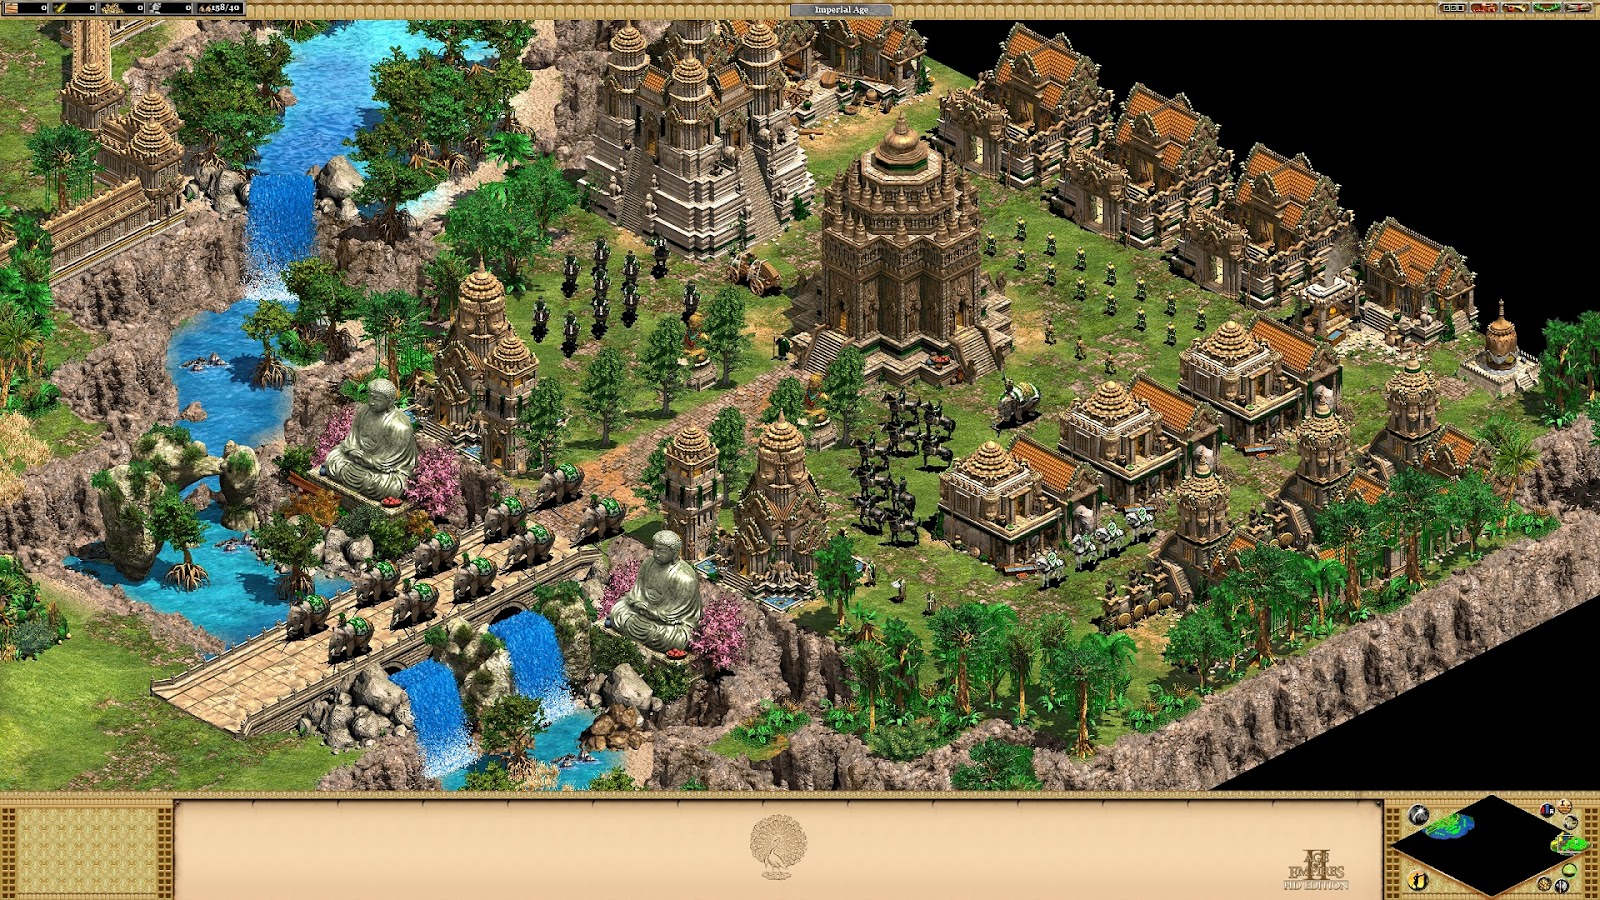 2 Apr 2018 ... ads. Age of Empires II HD is a Strategy and Action game for PC published by  Microsoft Studios in 2013. Experience improved Age of Empires II.